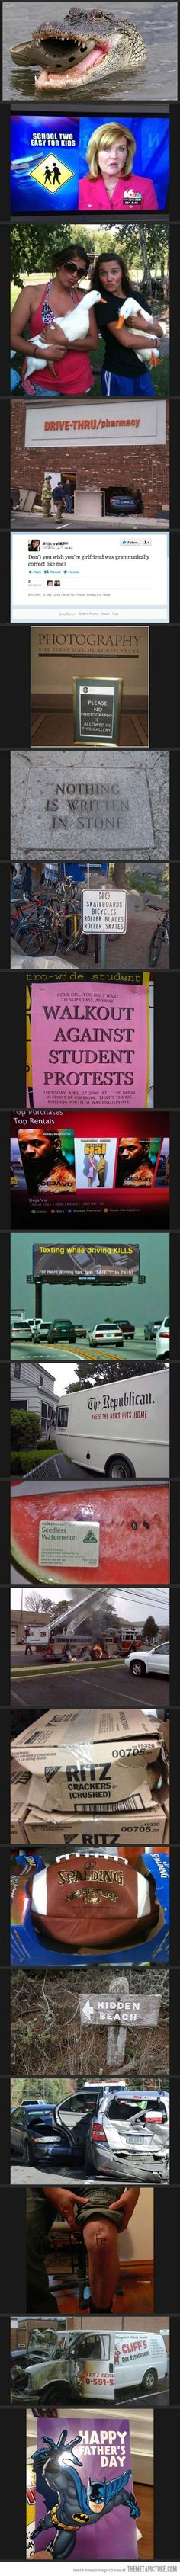 Very Ironic Photos…do you get the last one? lol